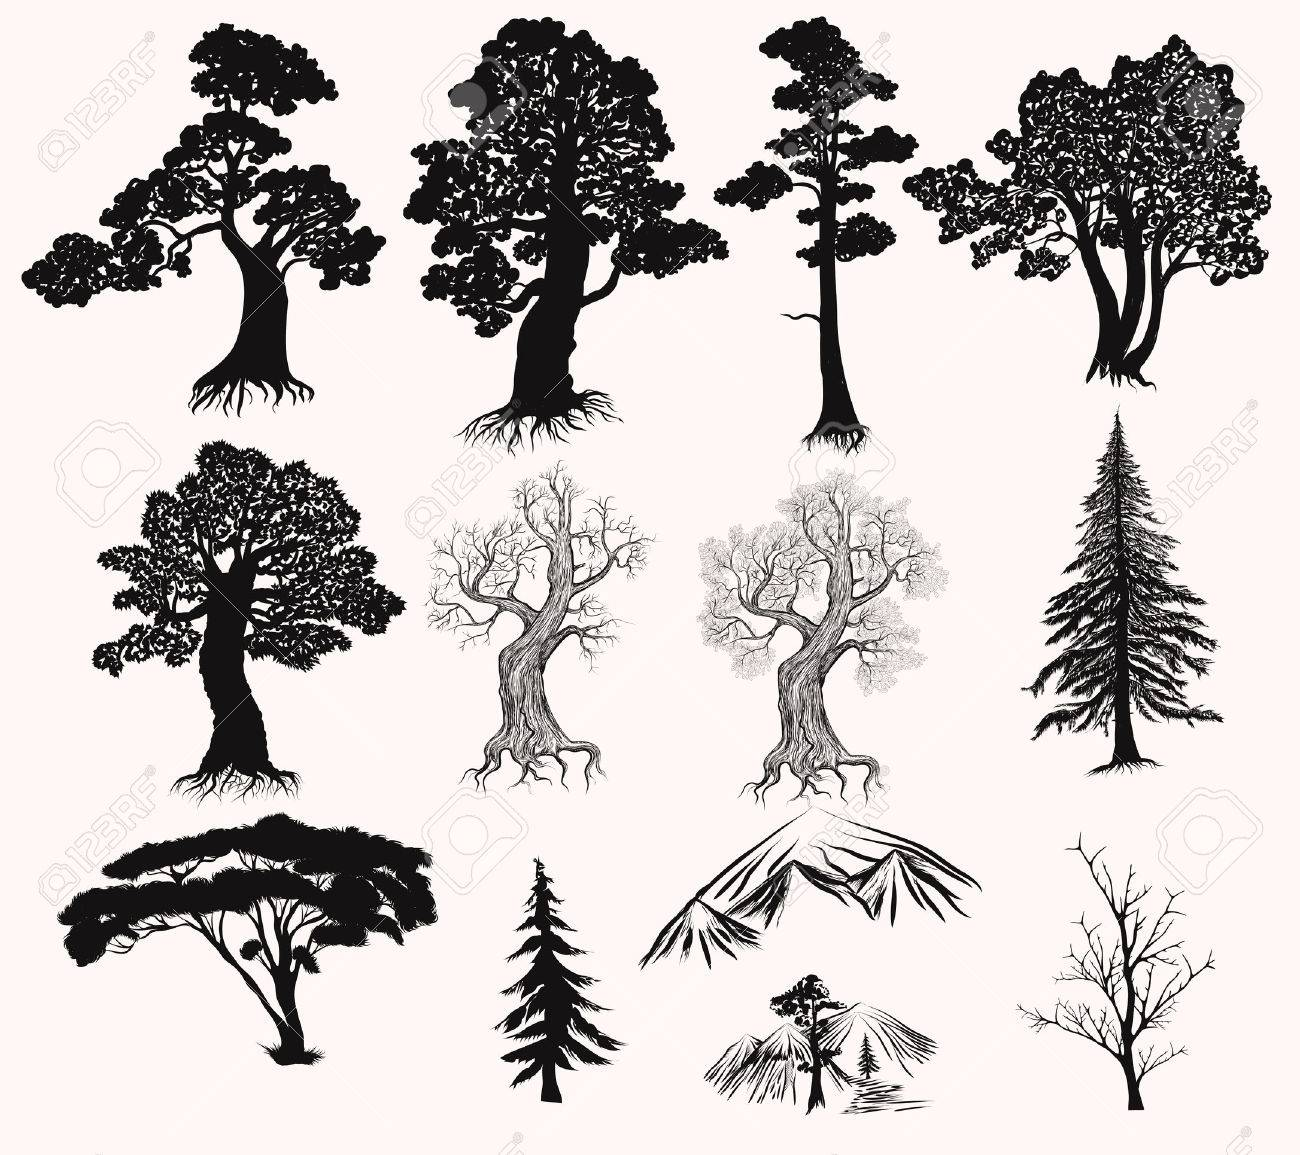 Collection or set of hand drawn detailed trees silhouettes oak pine fur tree and other - 51914809